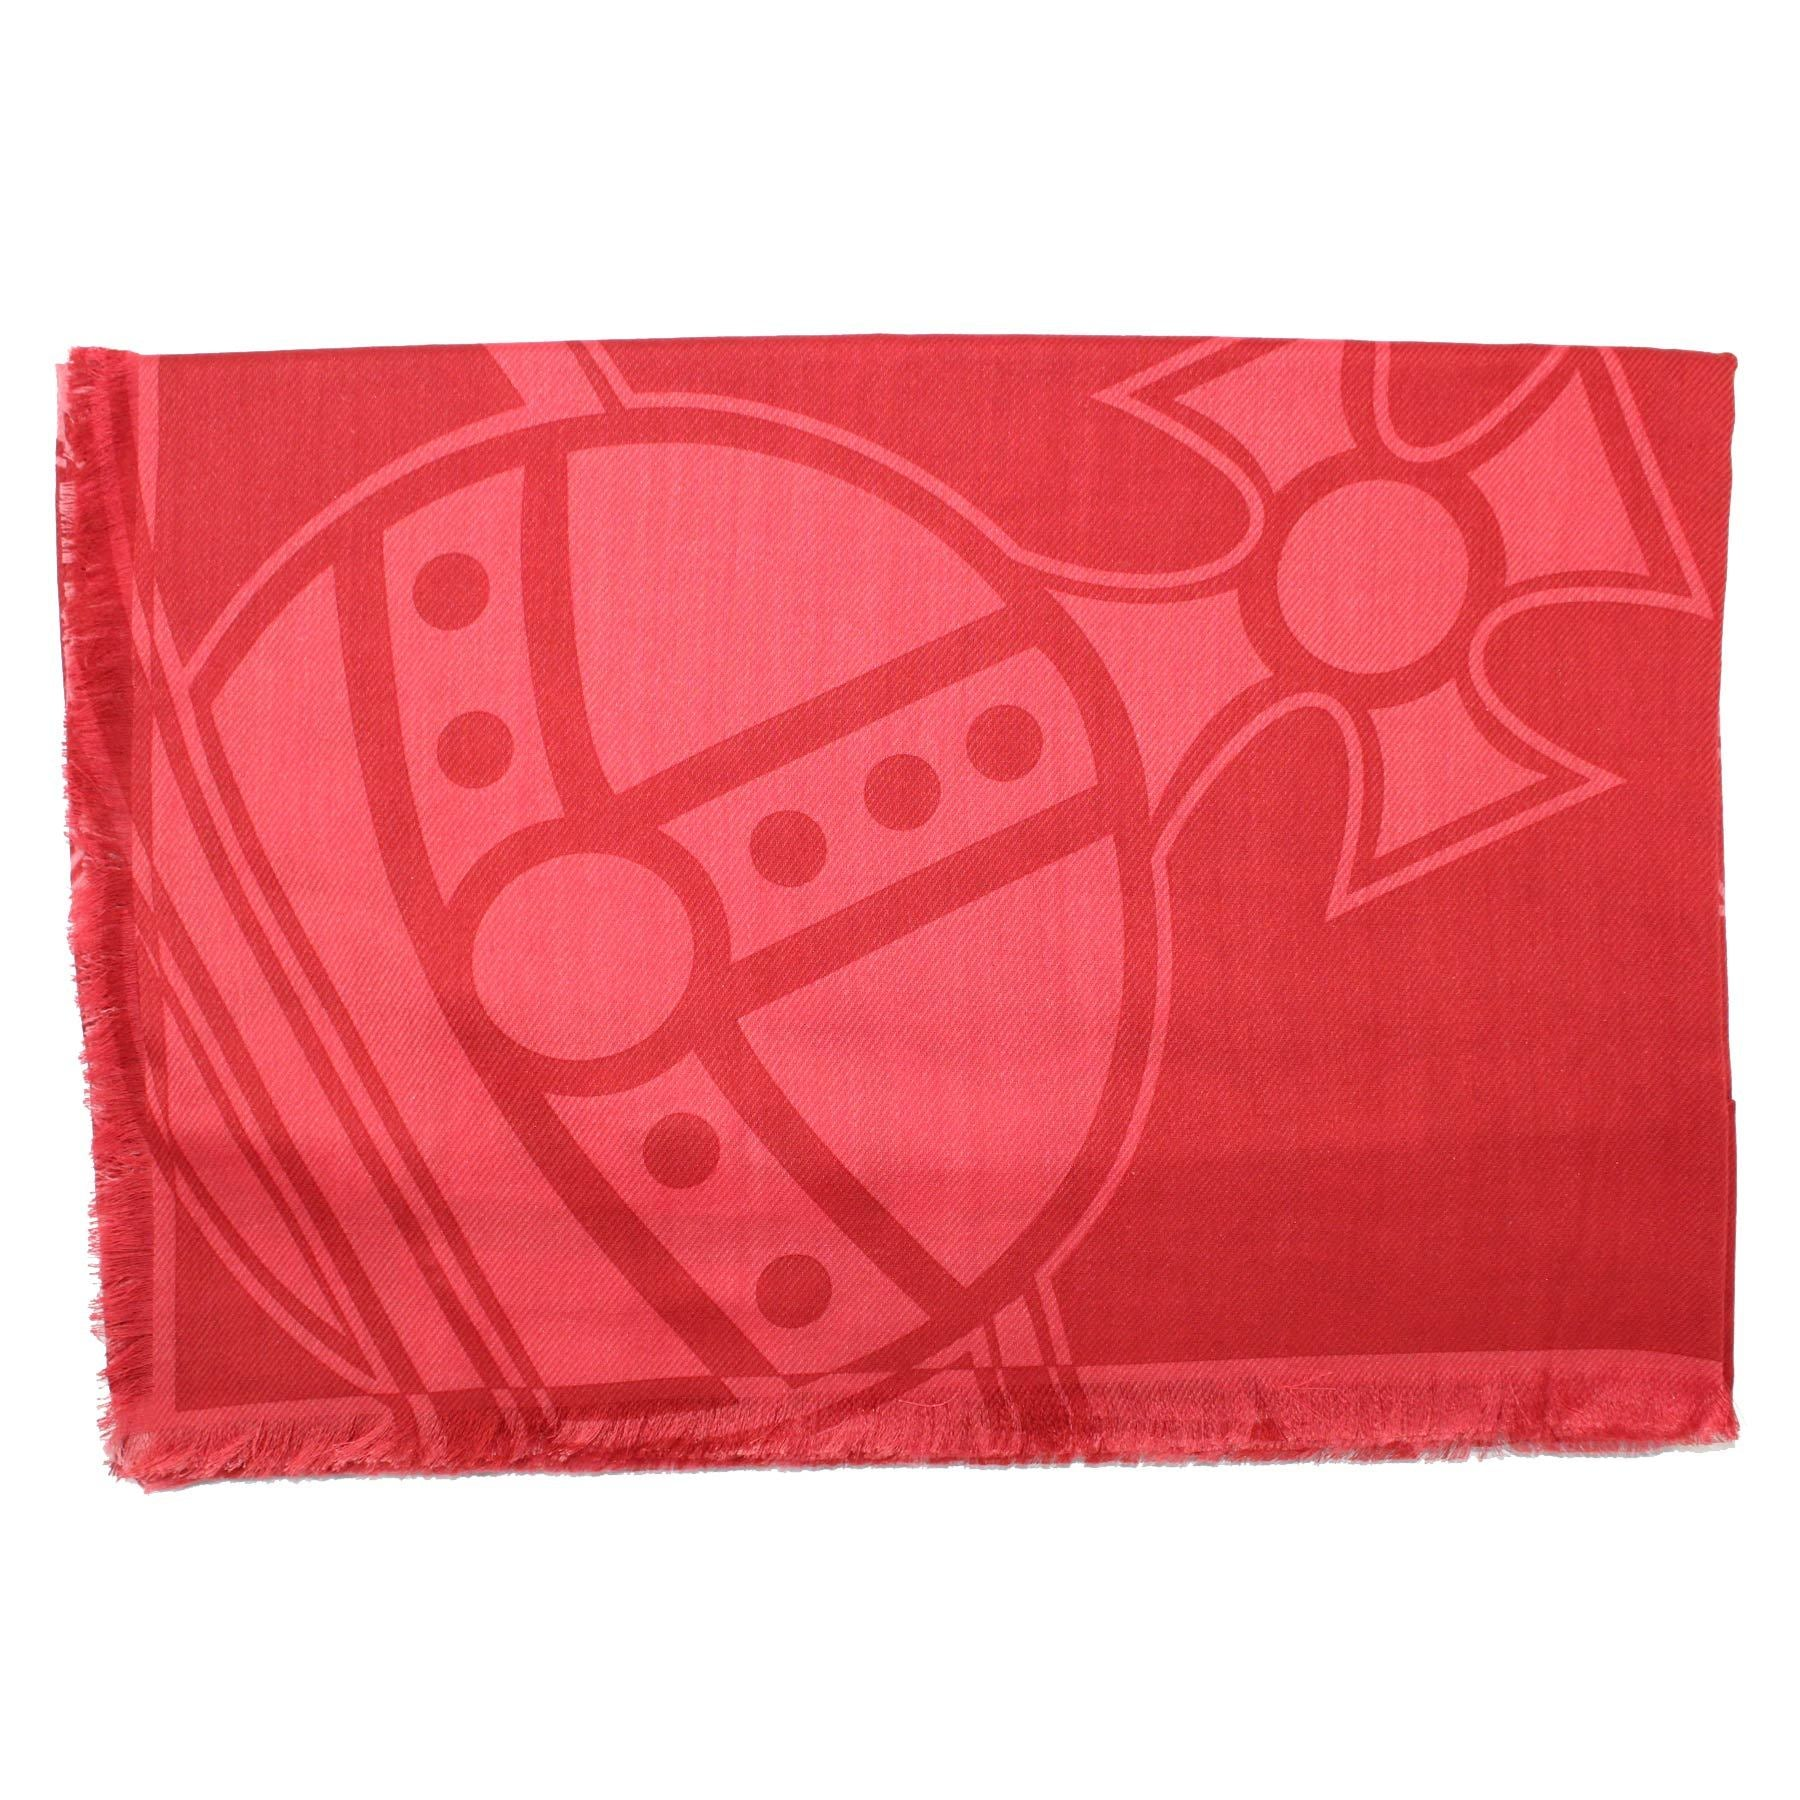 Vivienne Westwood Scarf Red Pink  Extra Large Wrap